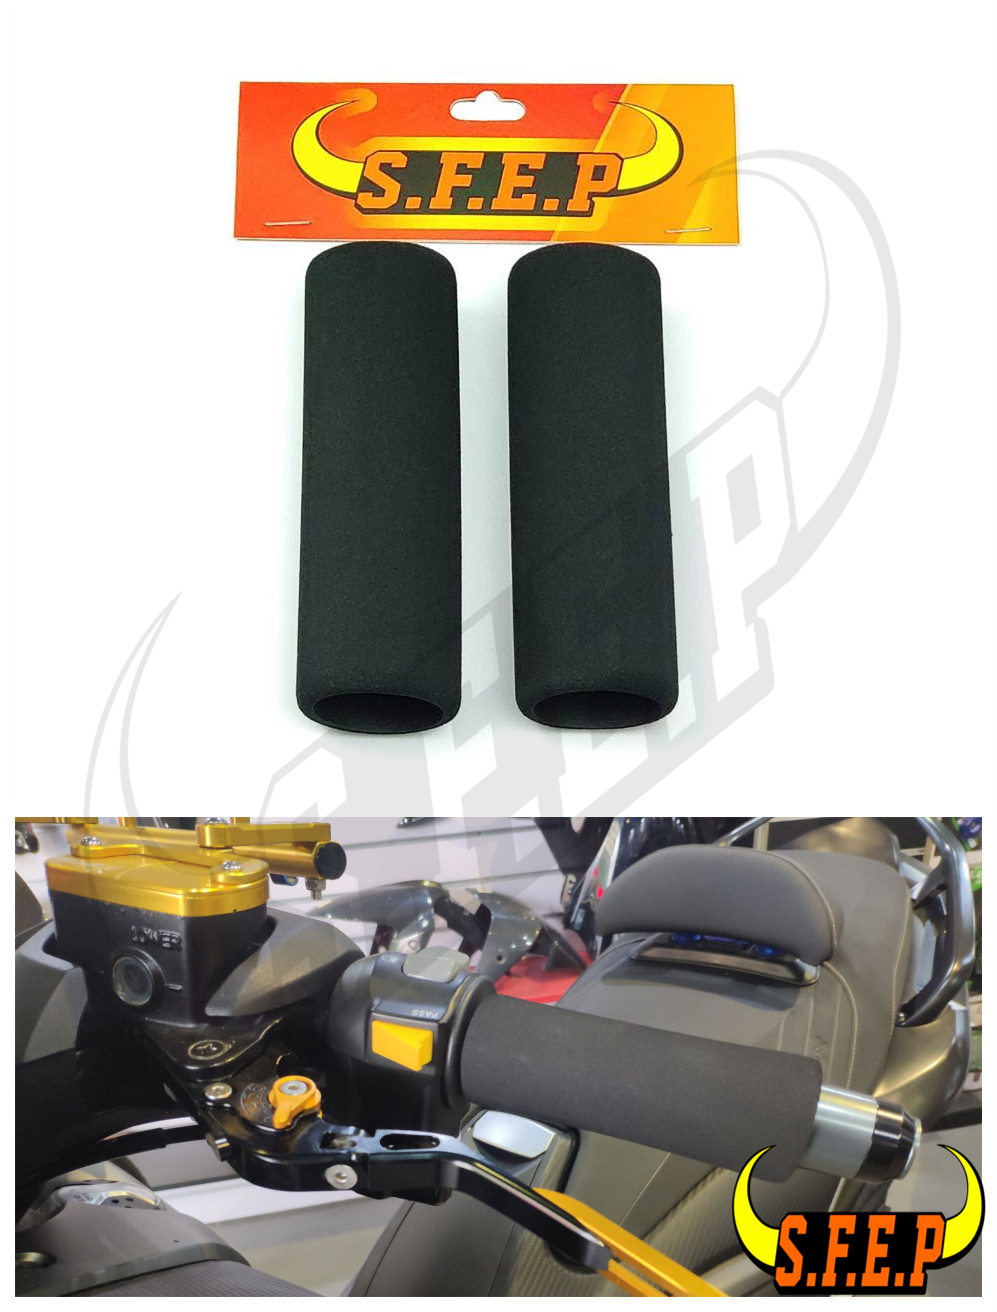 Universal Foam Anit-Vibration Motorcycle Comfort Grip Covers For BMW S1000R S1000RR HP4 R1200GS K1300 S K1200S F650GS F800GT